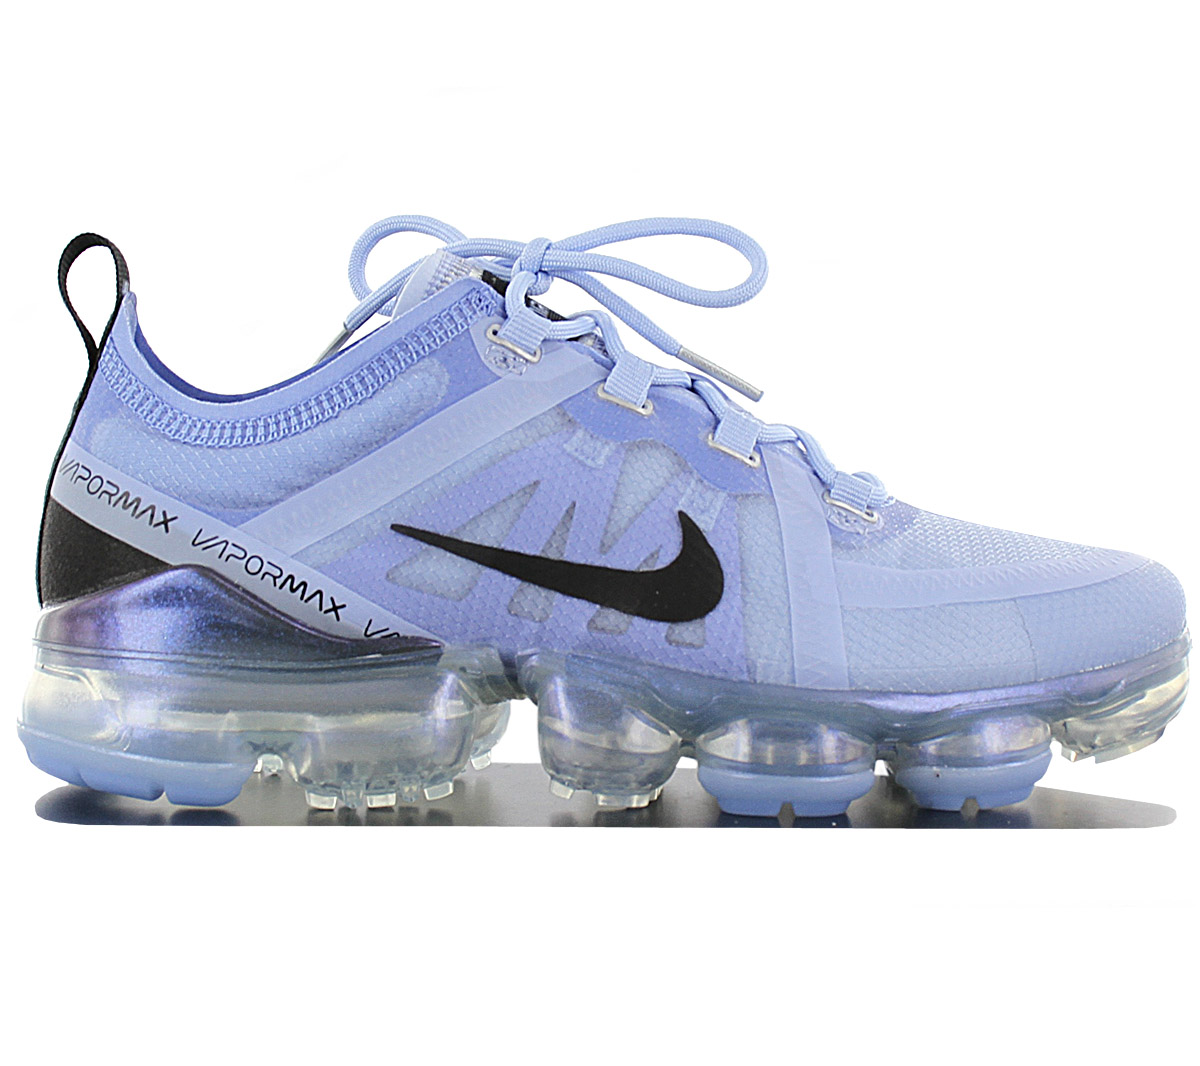 official photos fa366 d6863 Details about Nike Air Vapormax 2019 Women's Sneaker AR6632-401 Purple  Fashion Shoes Trainers